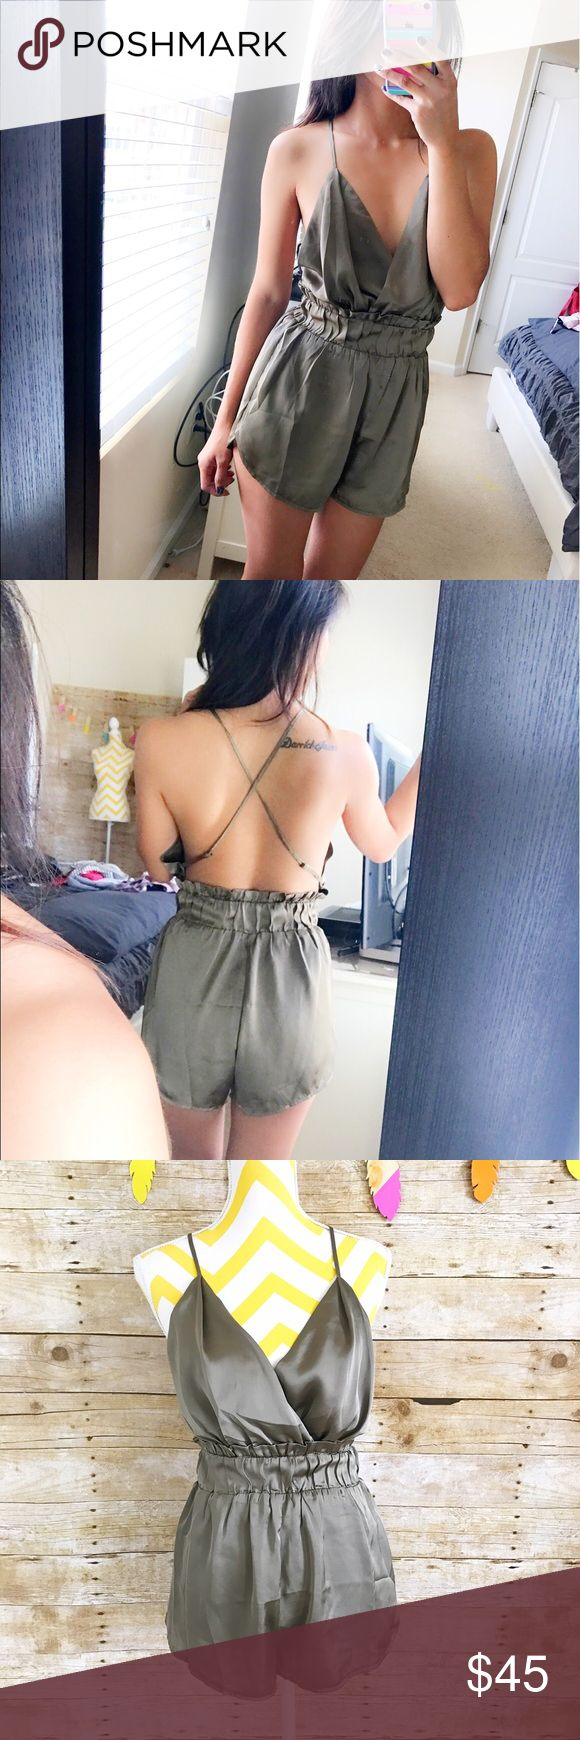 Olive green silky backless playsuit Nwot! Only worn to model. Garter cinched at the waist, adjustable straps. No pockets. Lined. Dresses Mini